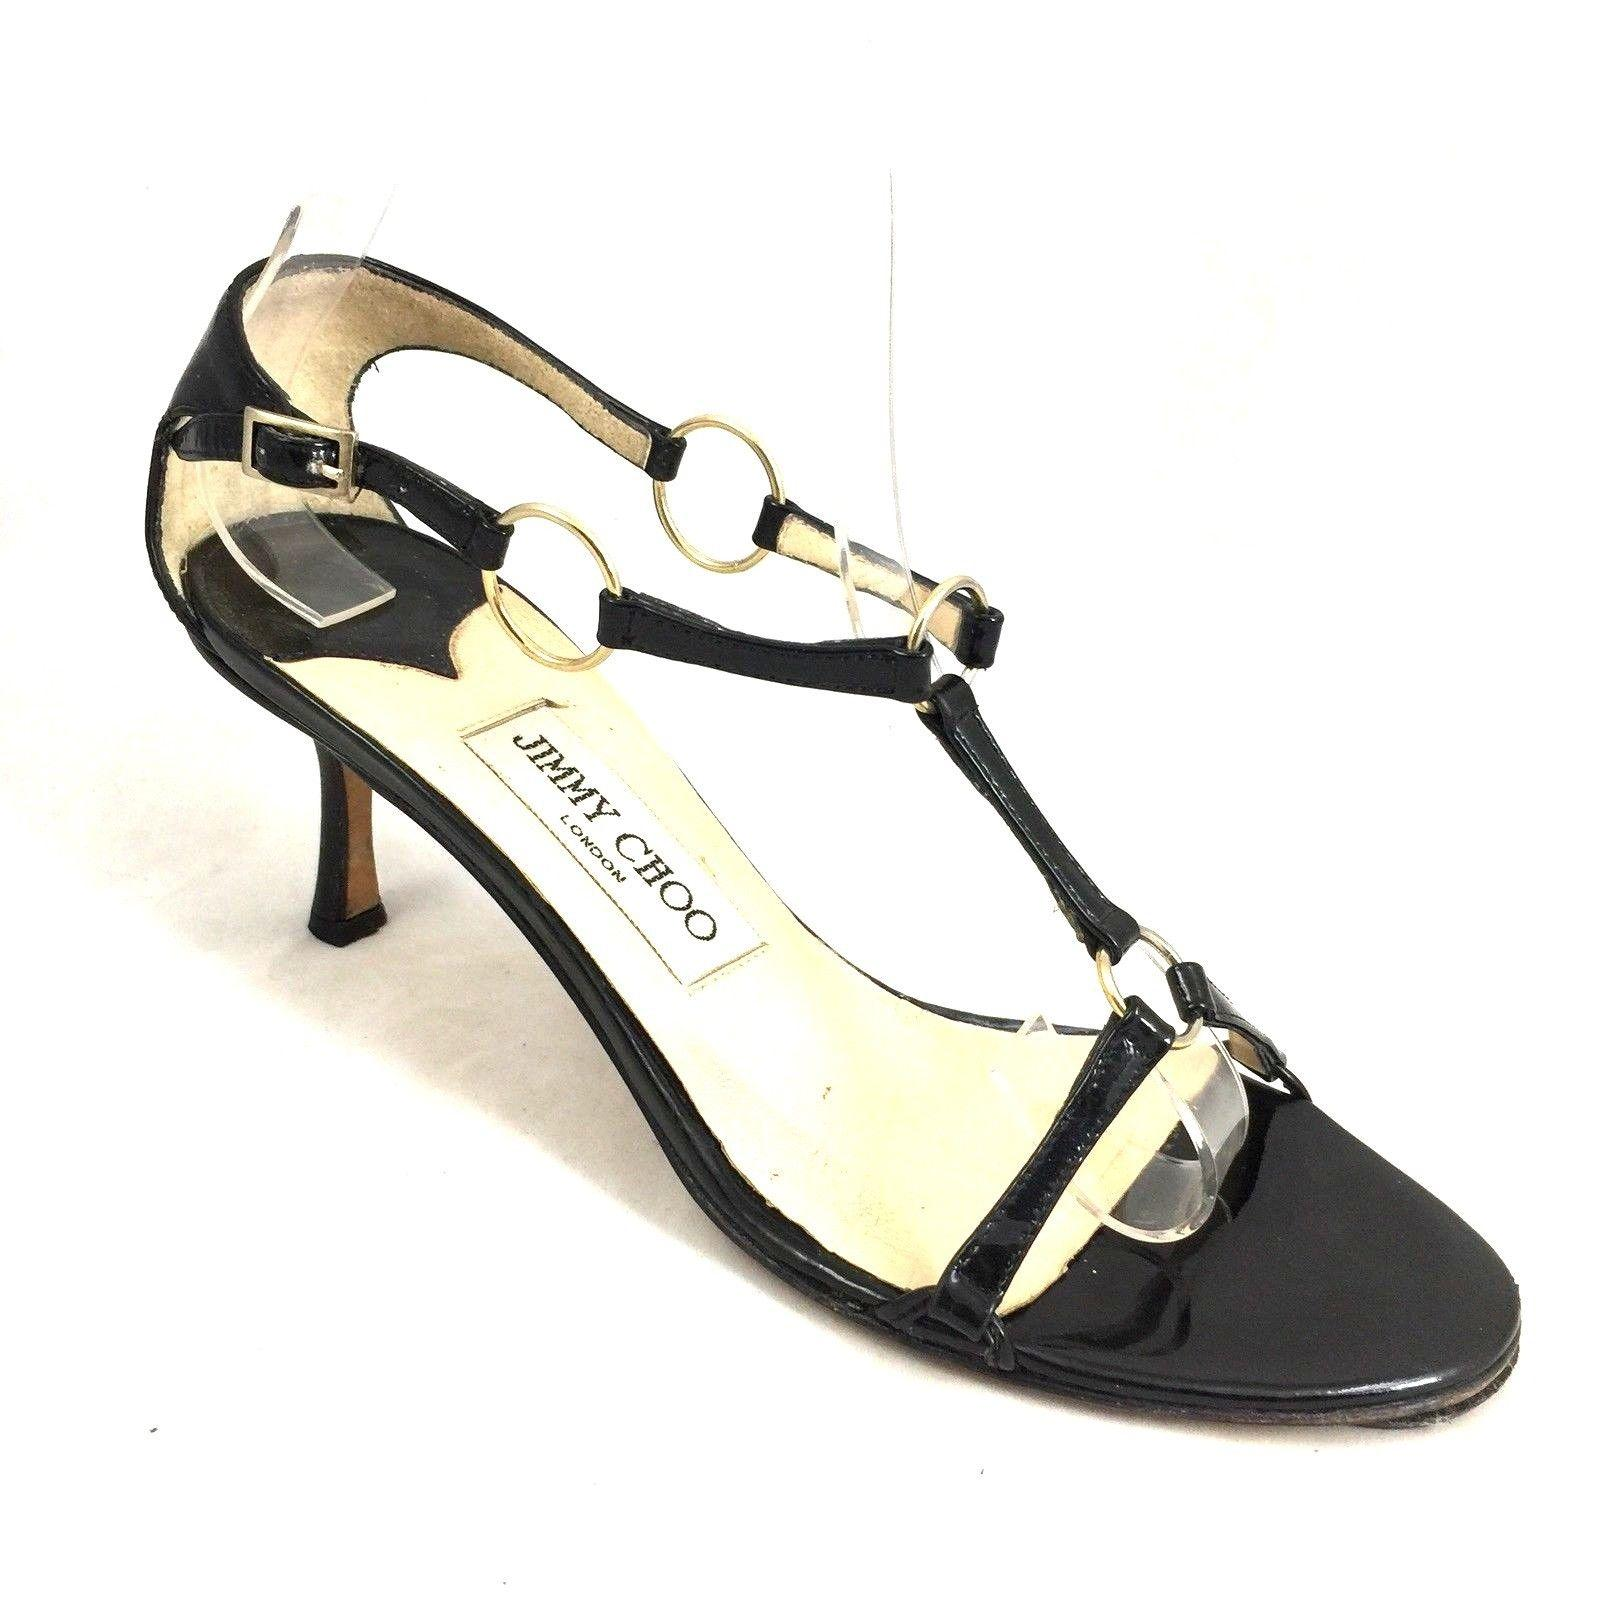 Jimmy Choo Black Helium Patent Leather Ankle Strap Harness Open Toe Cage Sandals Size US 6.5 Regular (M, B)